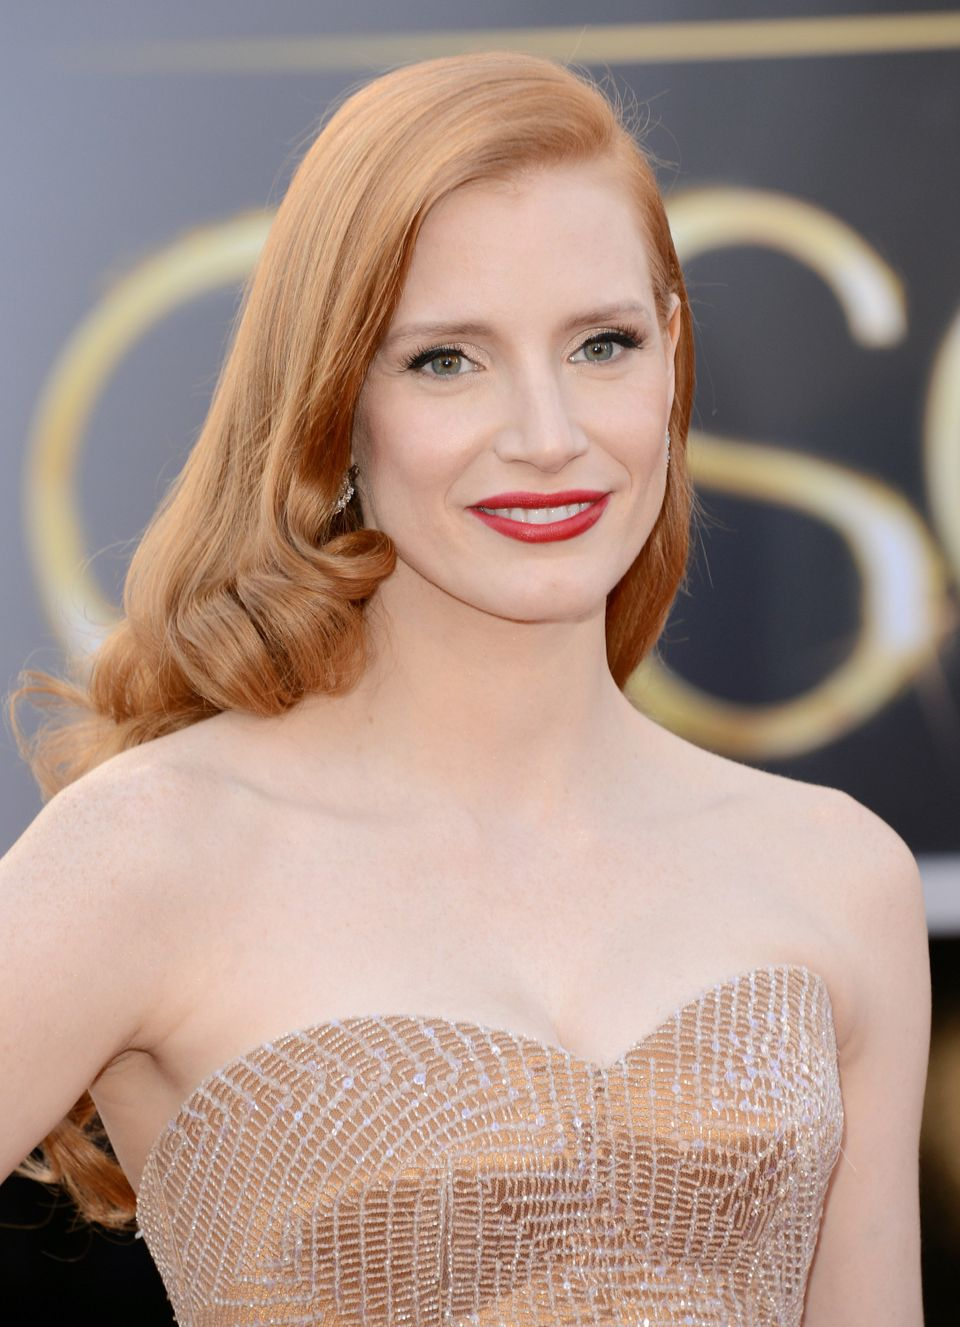 Now this is Hollywood glamour. Her soft waves, liquid liner and red lipstick exude the perfect amount of vintage appeal. Well